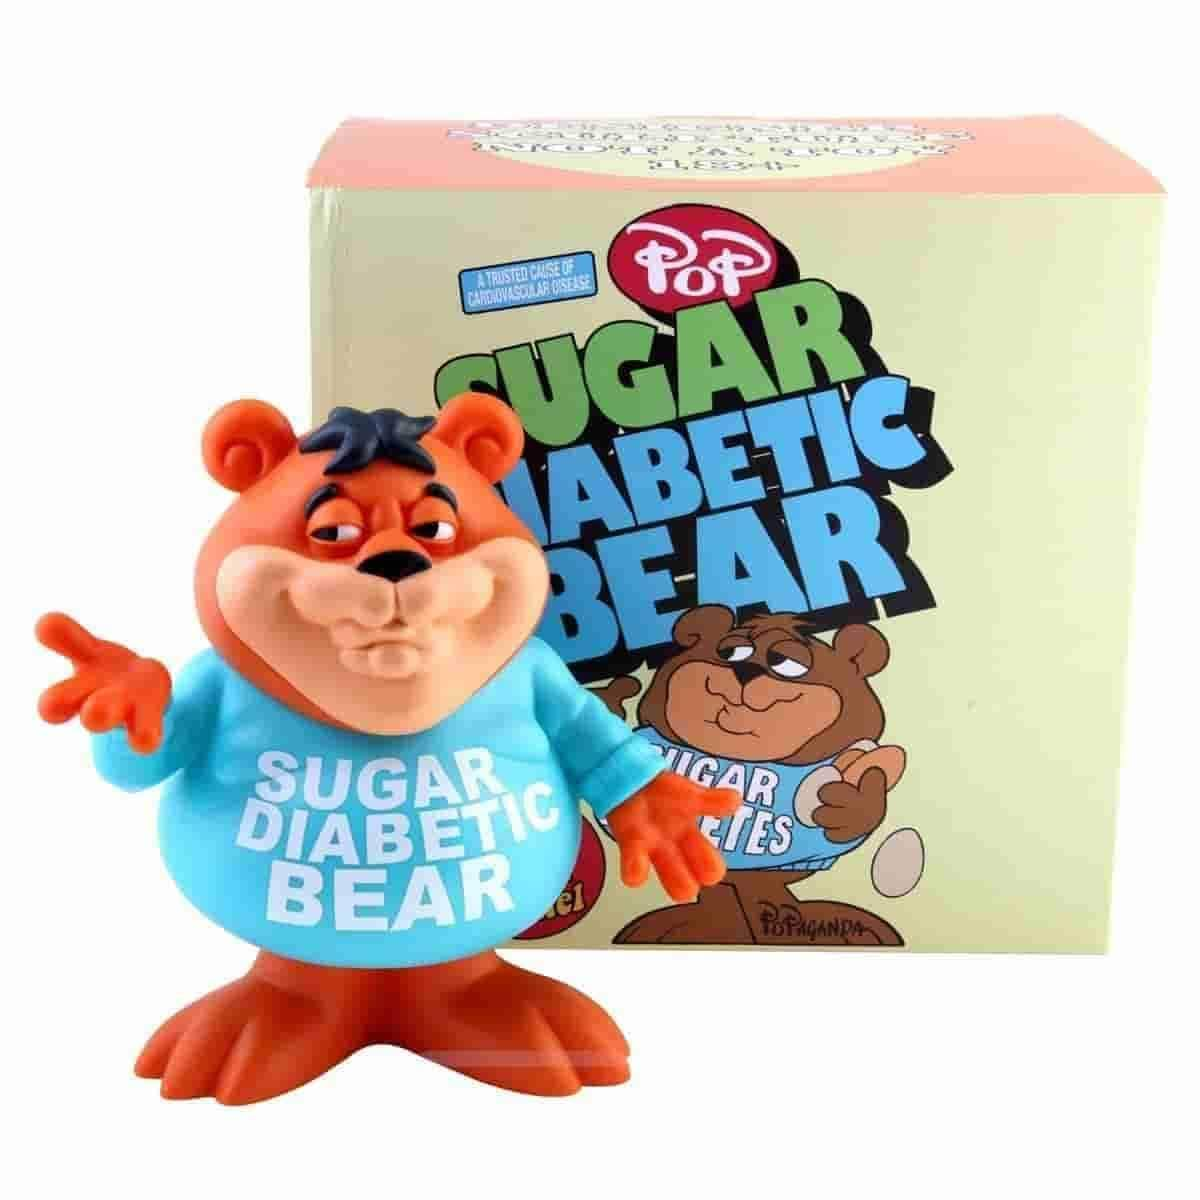 Sugar Diabetic Bear Cereal Killers by Ron English - IamRetro.com